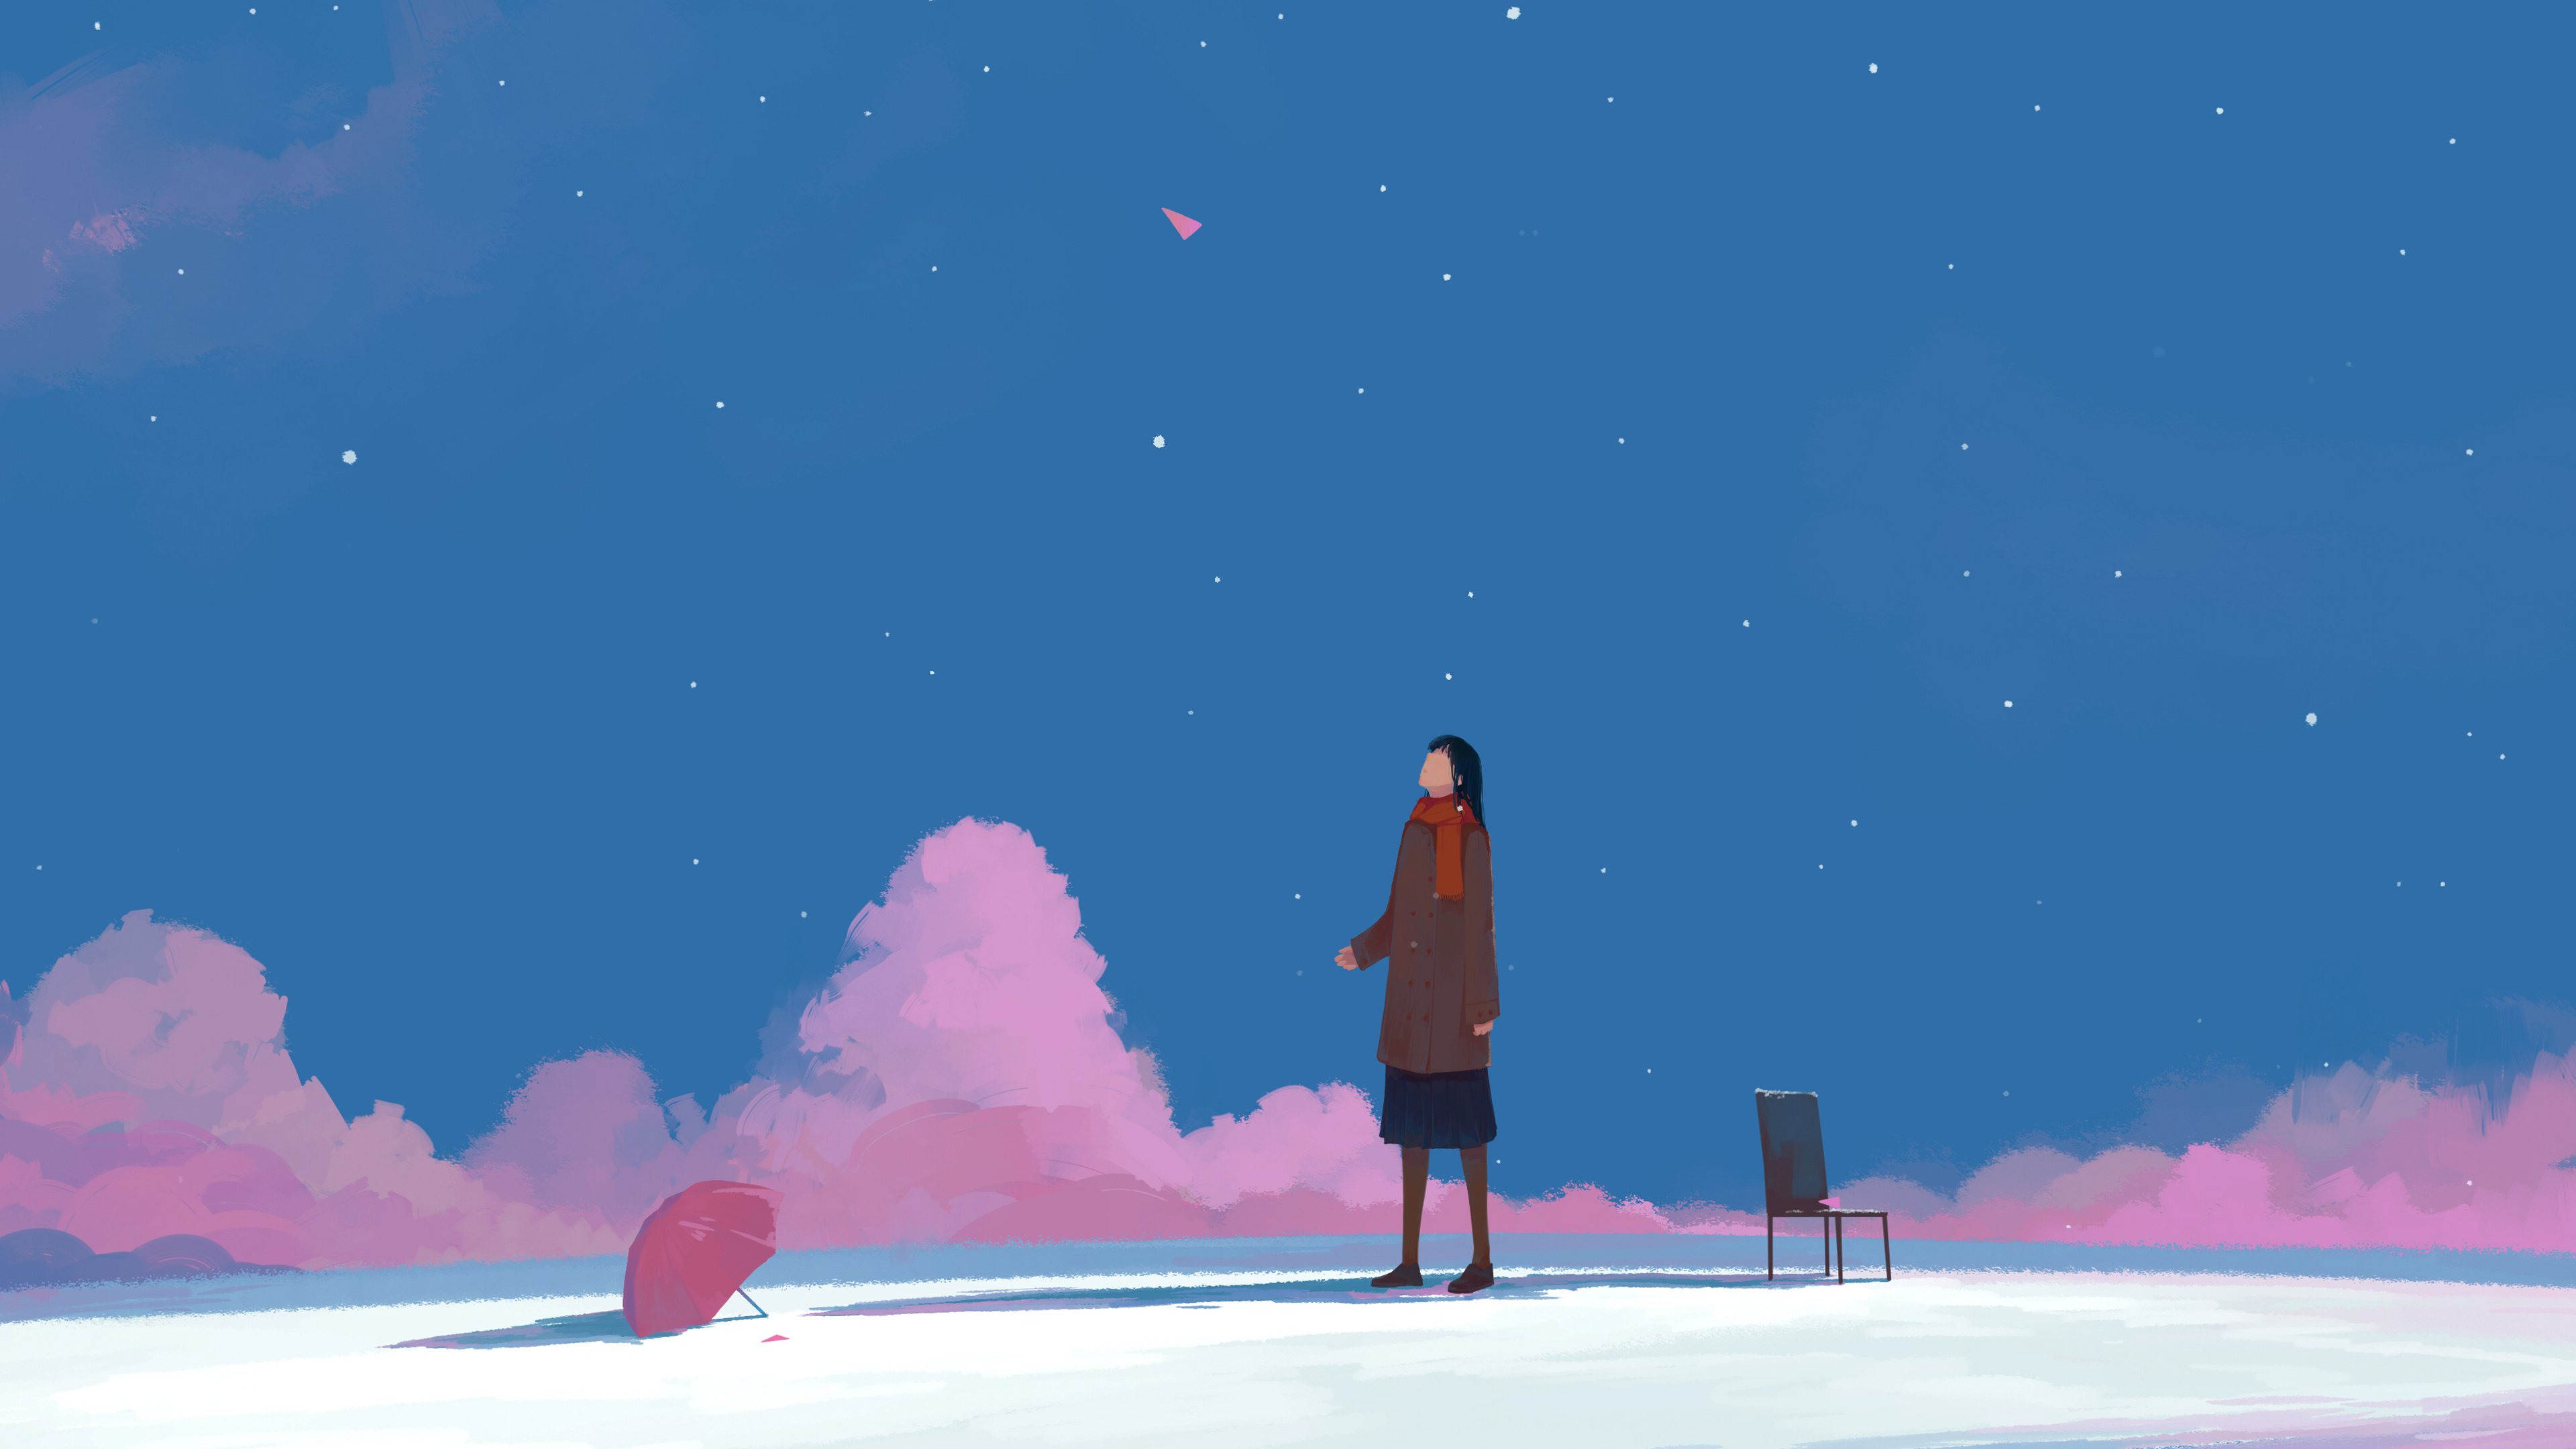 Download 3840x2400 Wallpaper Minimal Sky Clouds Anime